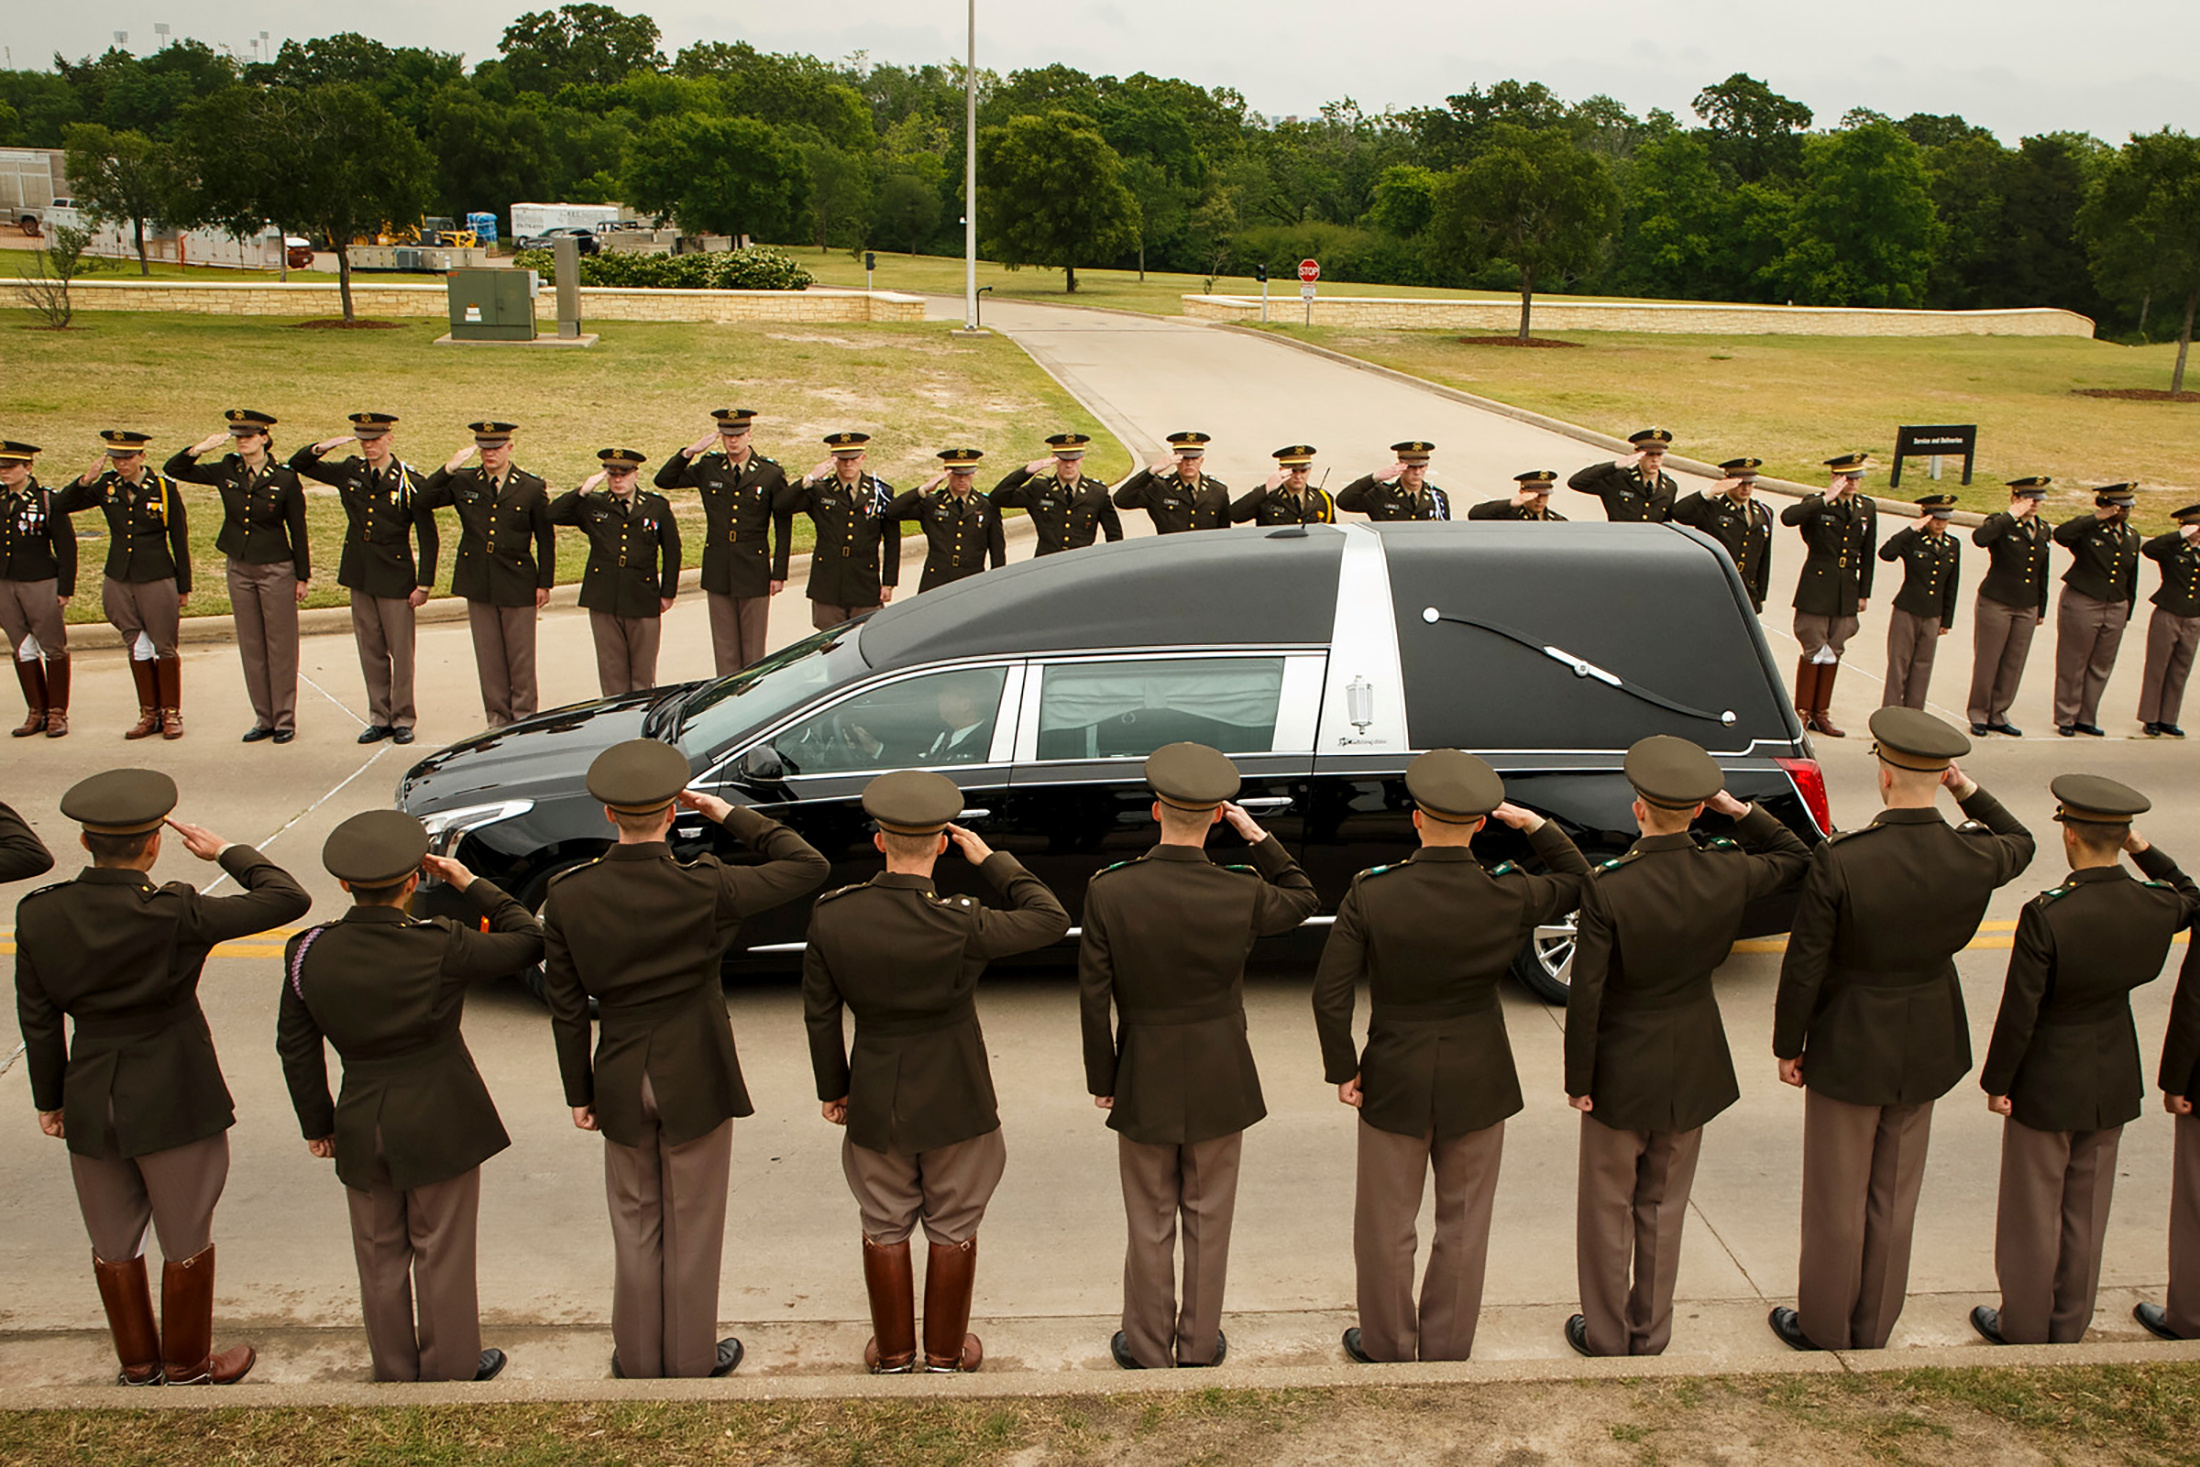 The hearse carrying former first lady Barbara Bush passes through members of the Texas A&M Corps of Cadets as it nears her husband's presidential library at the university in College Station, Texas, U.S. April 21, 2018. Smiley N. Pool/Pool via REUTERS